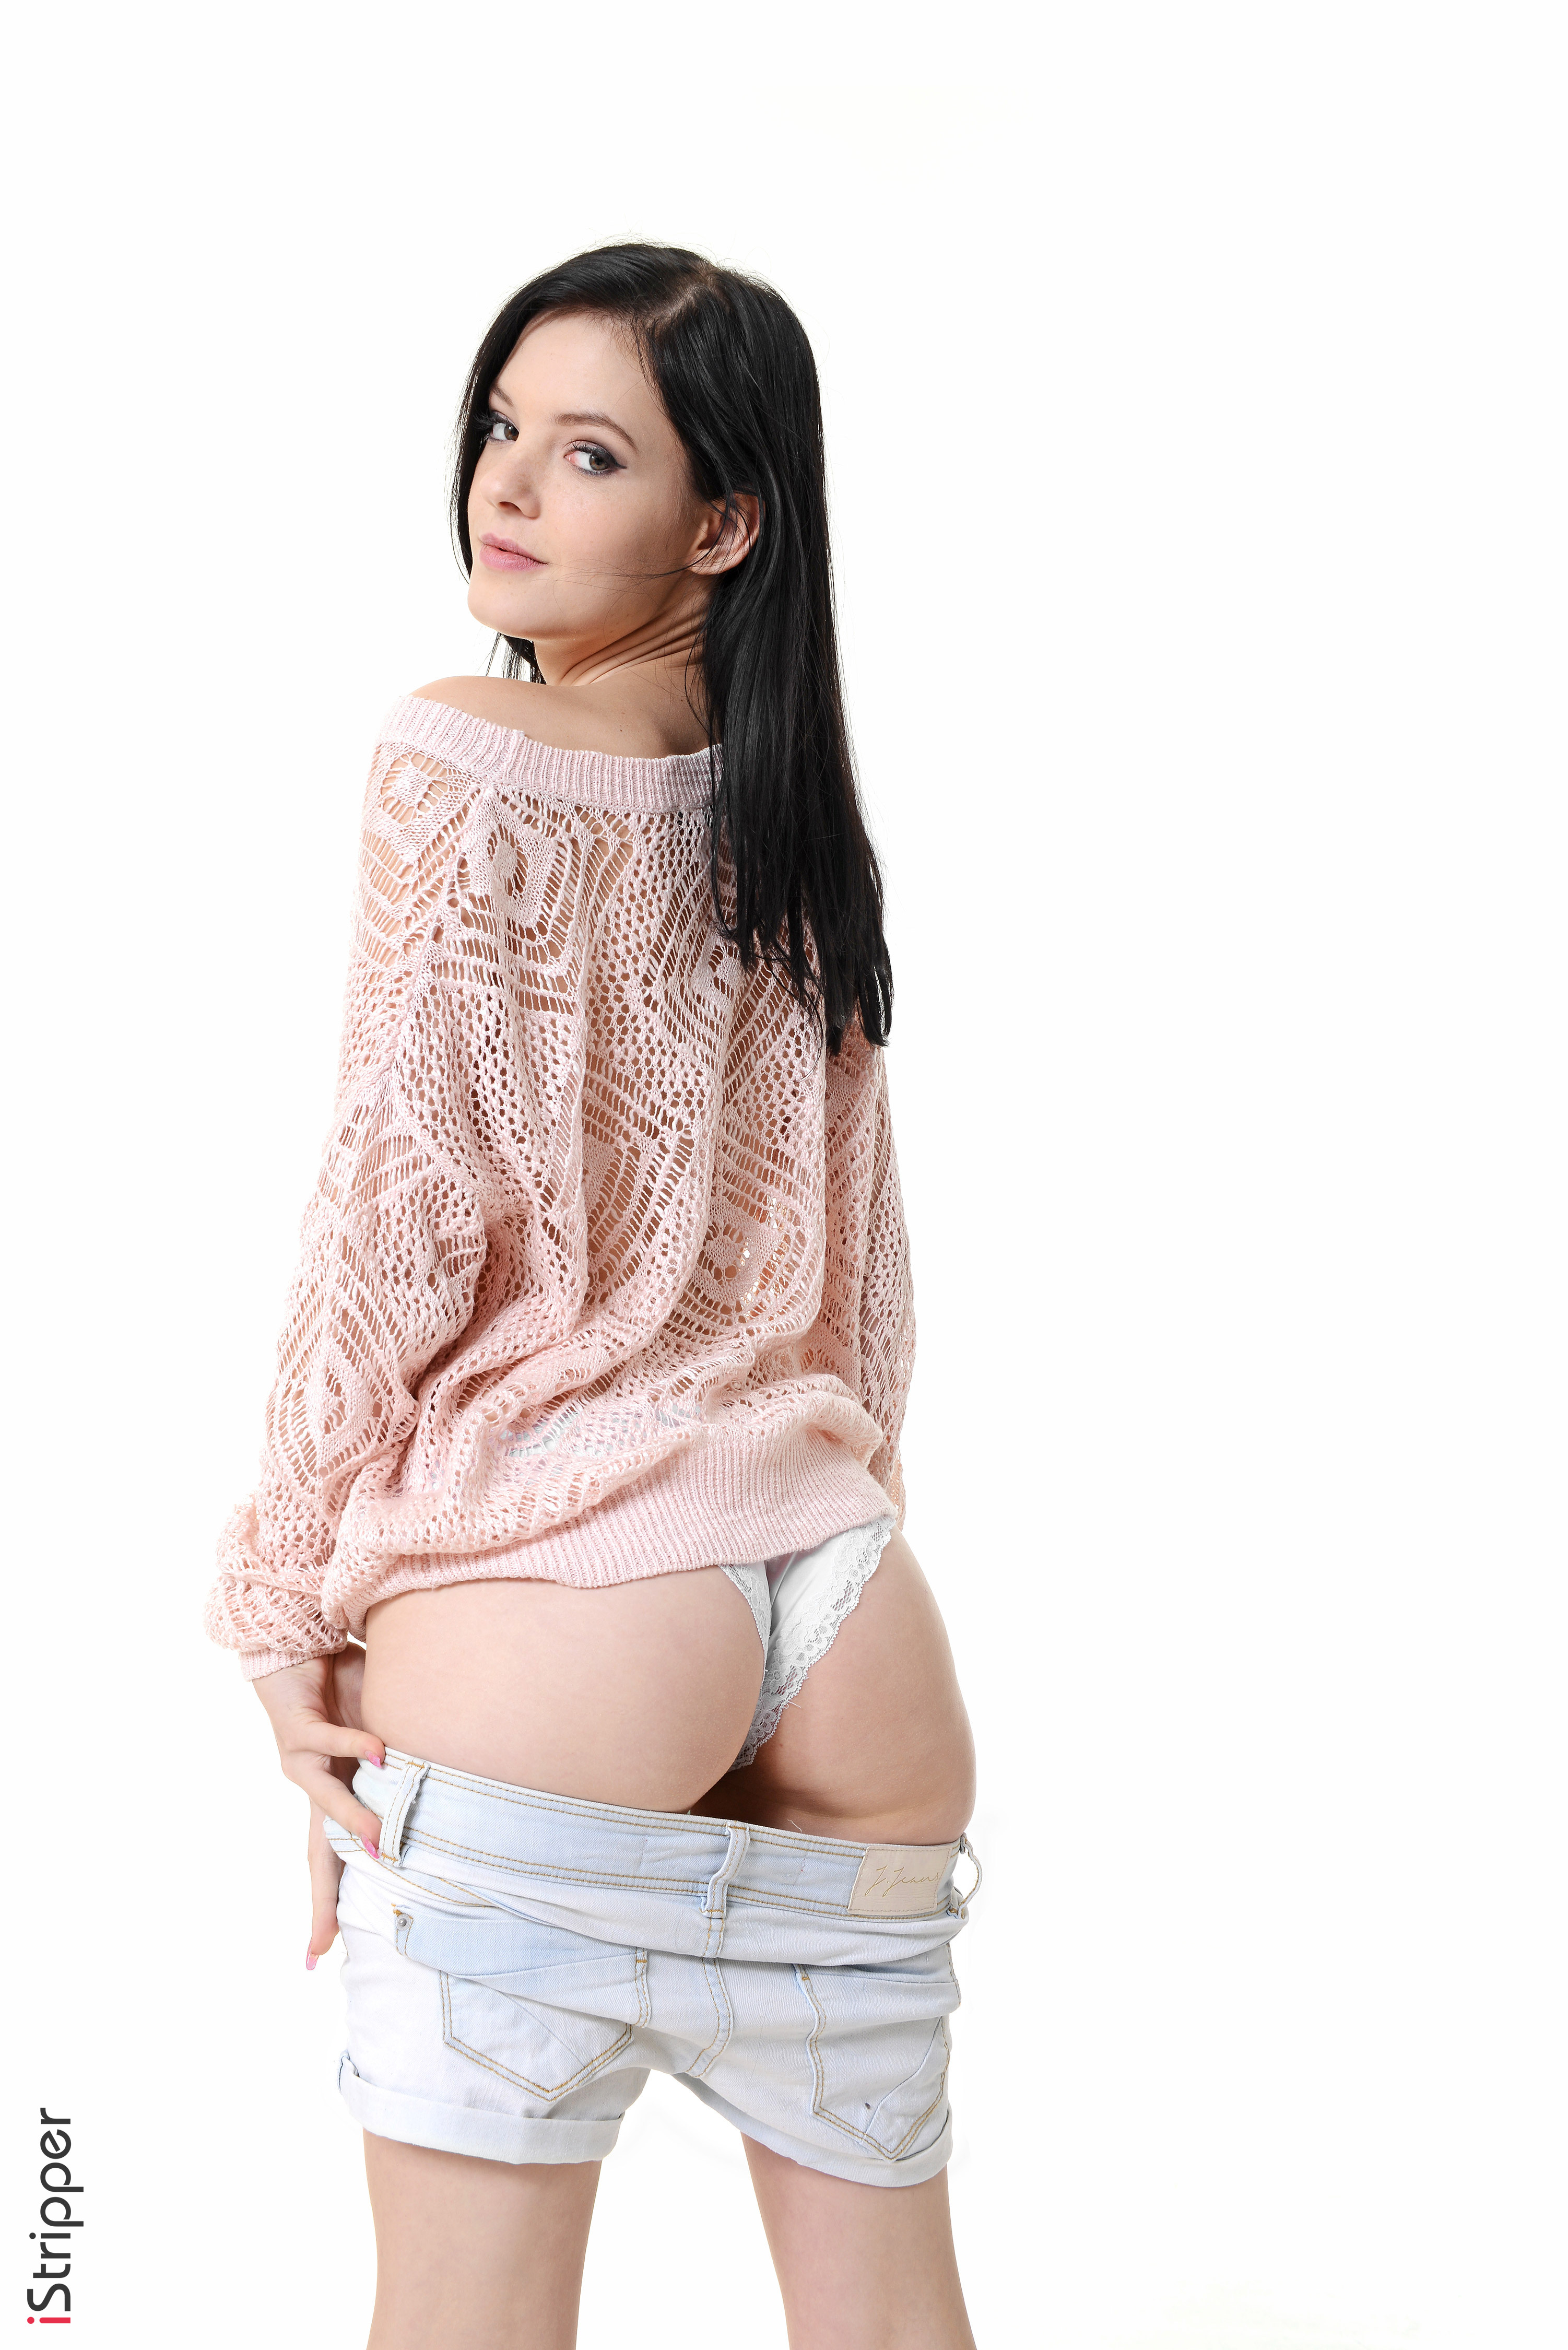 naked wallpapers of girls